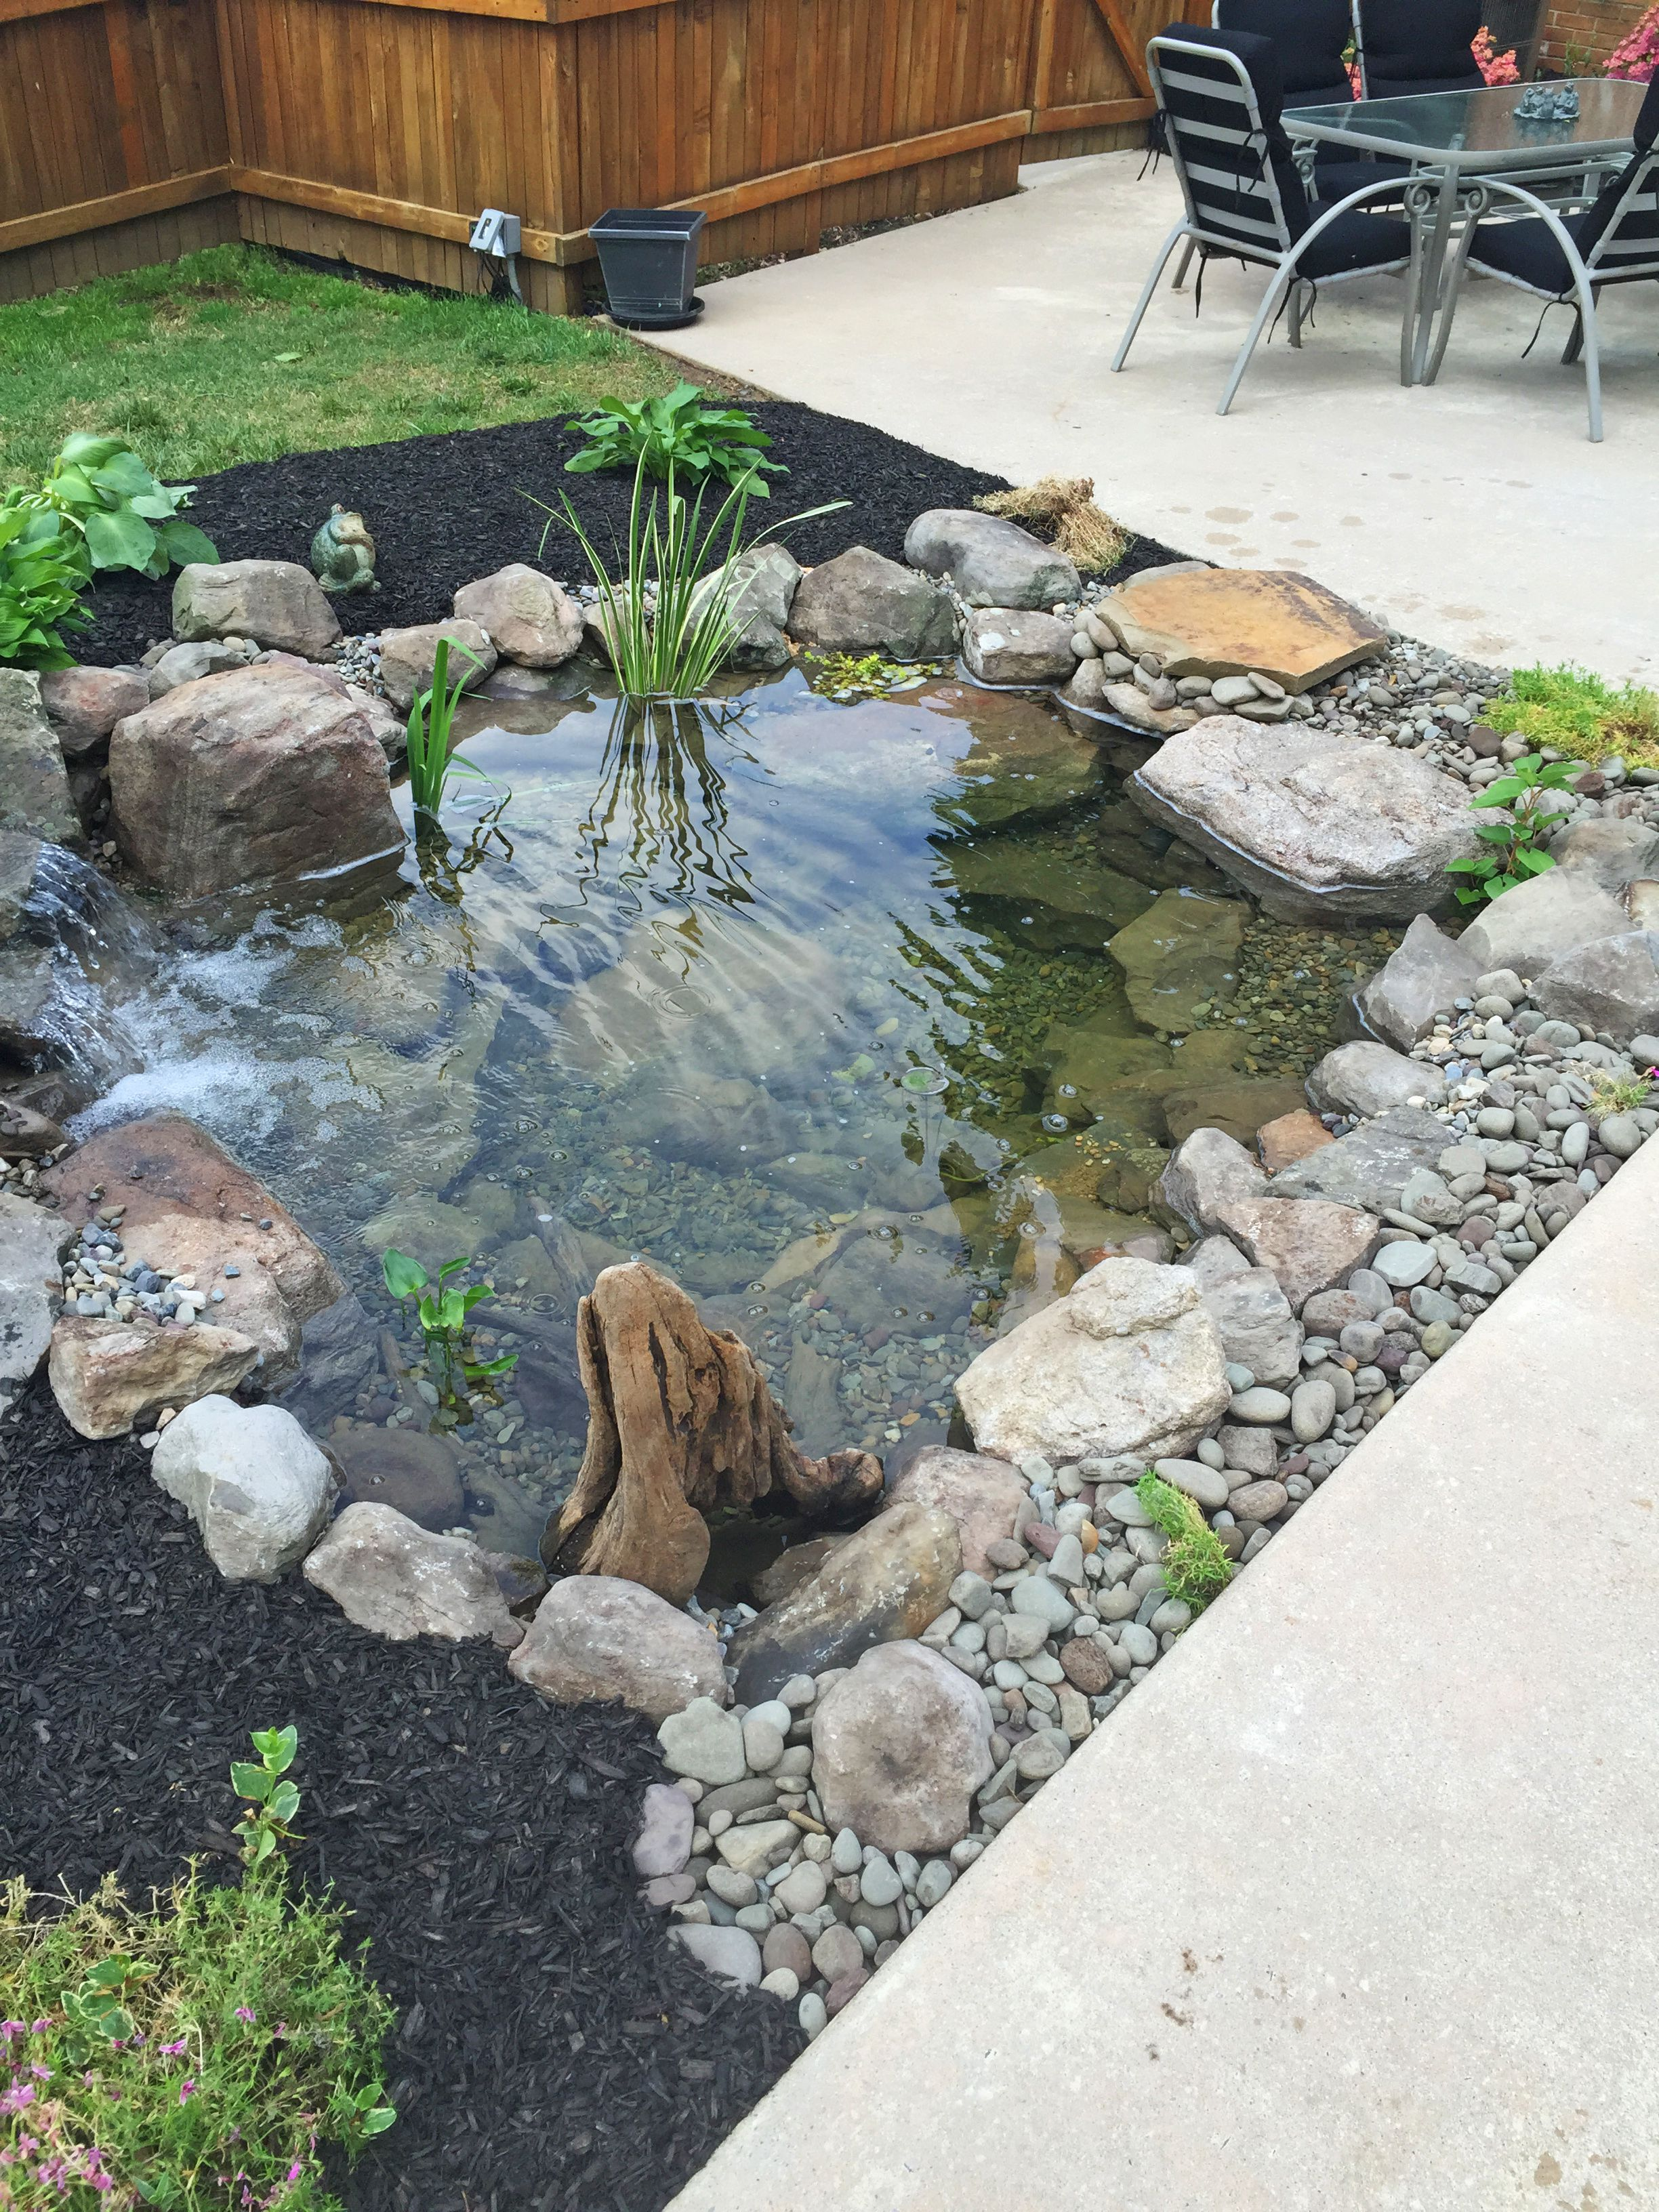 Backyard fish pond waterfall koi water garden waterscapes for Koi ponds and gardens